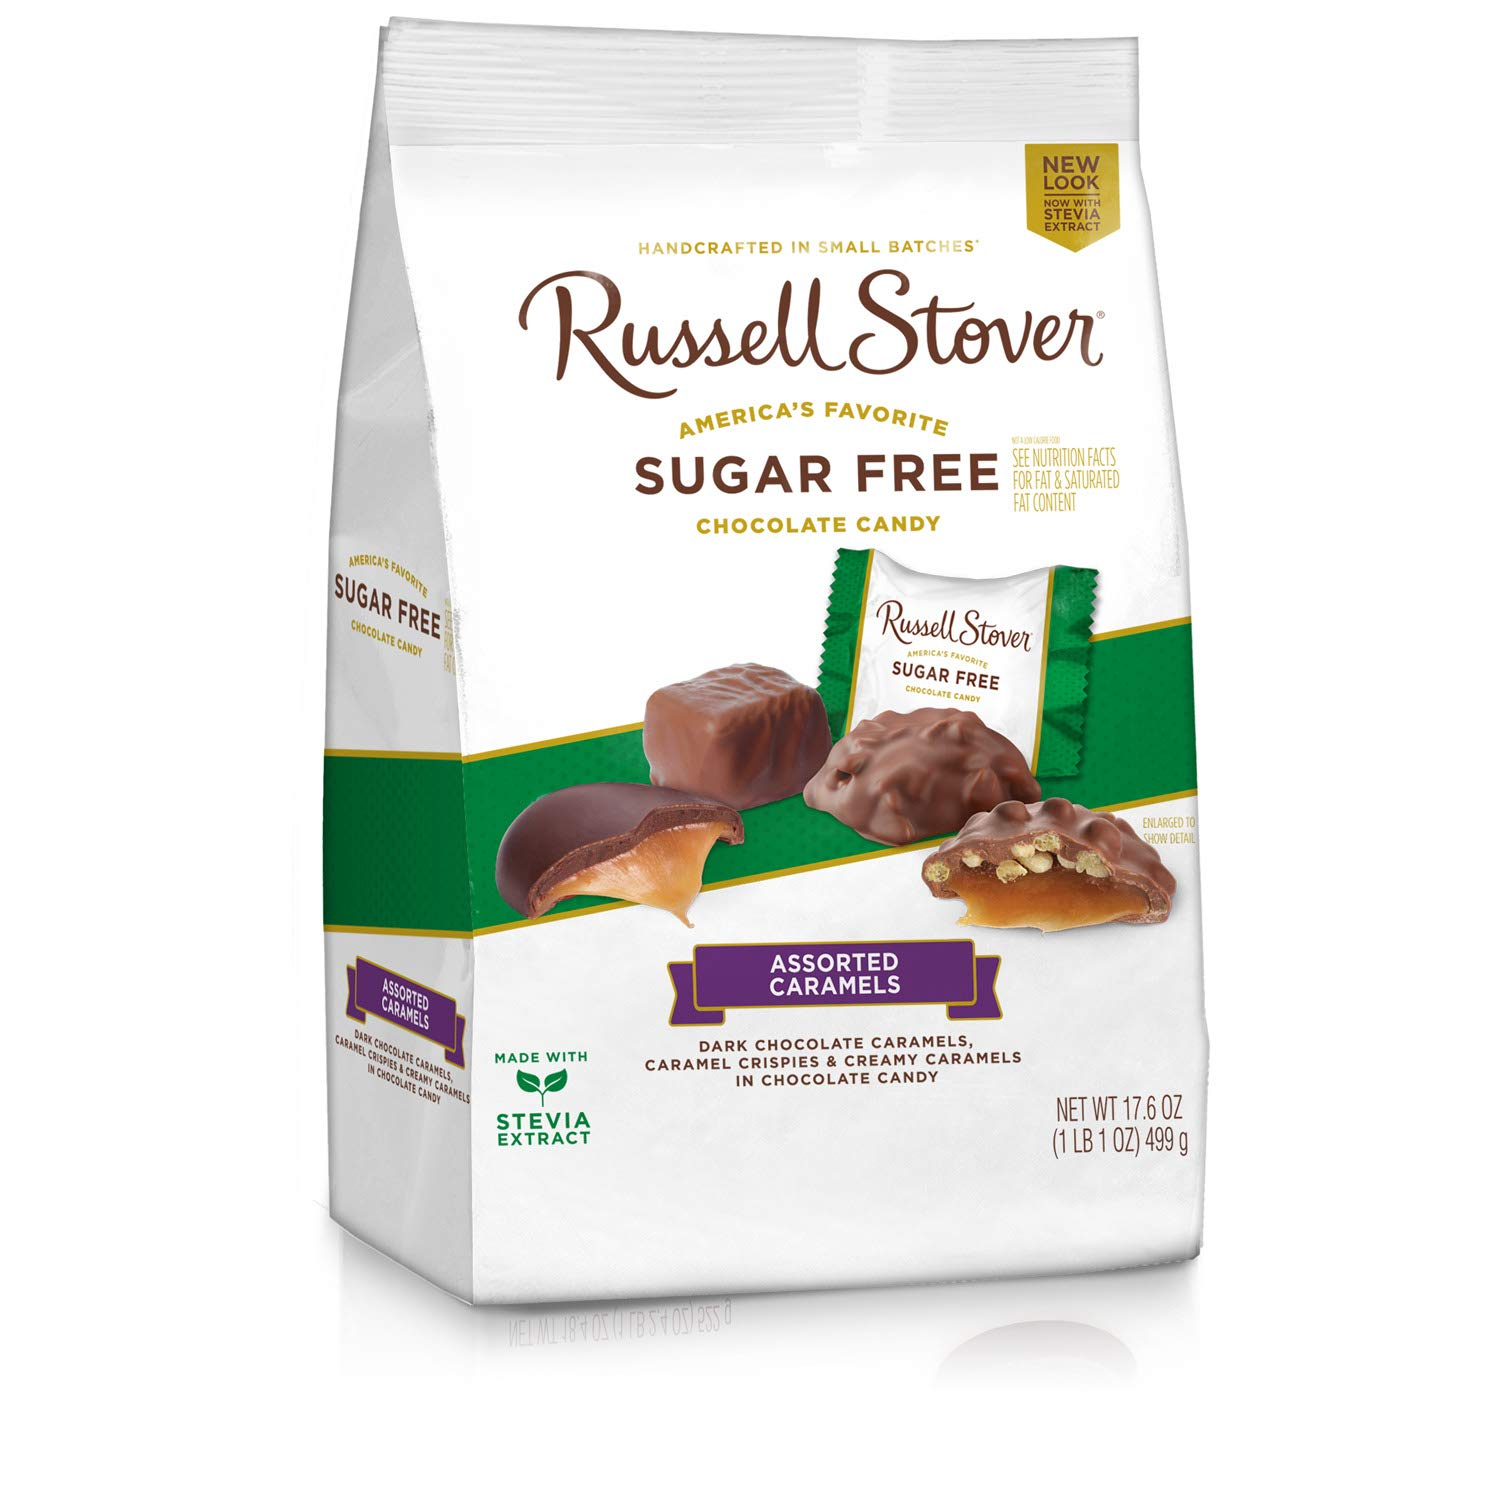 Russell Stover Sugar Free Caramel Mix, 17.6 Ounce Bag, 4 Count